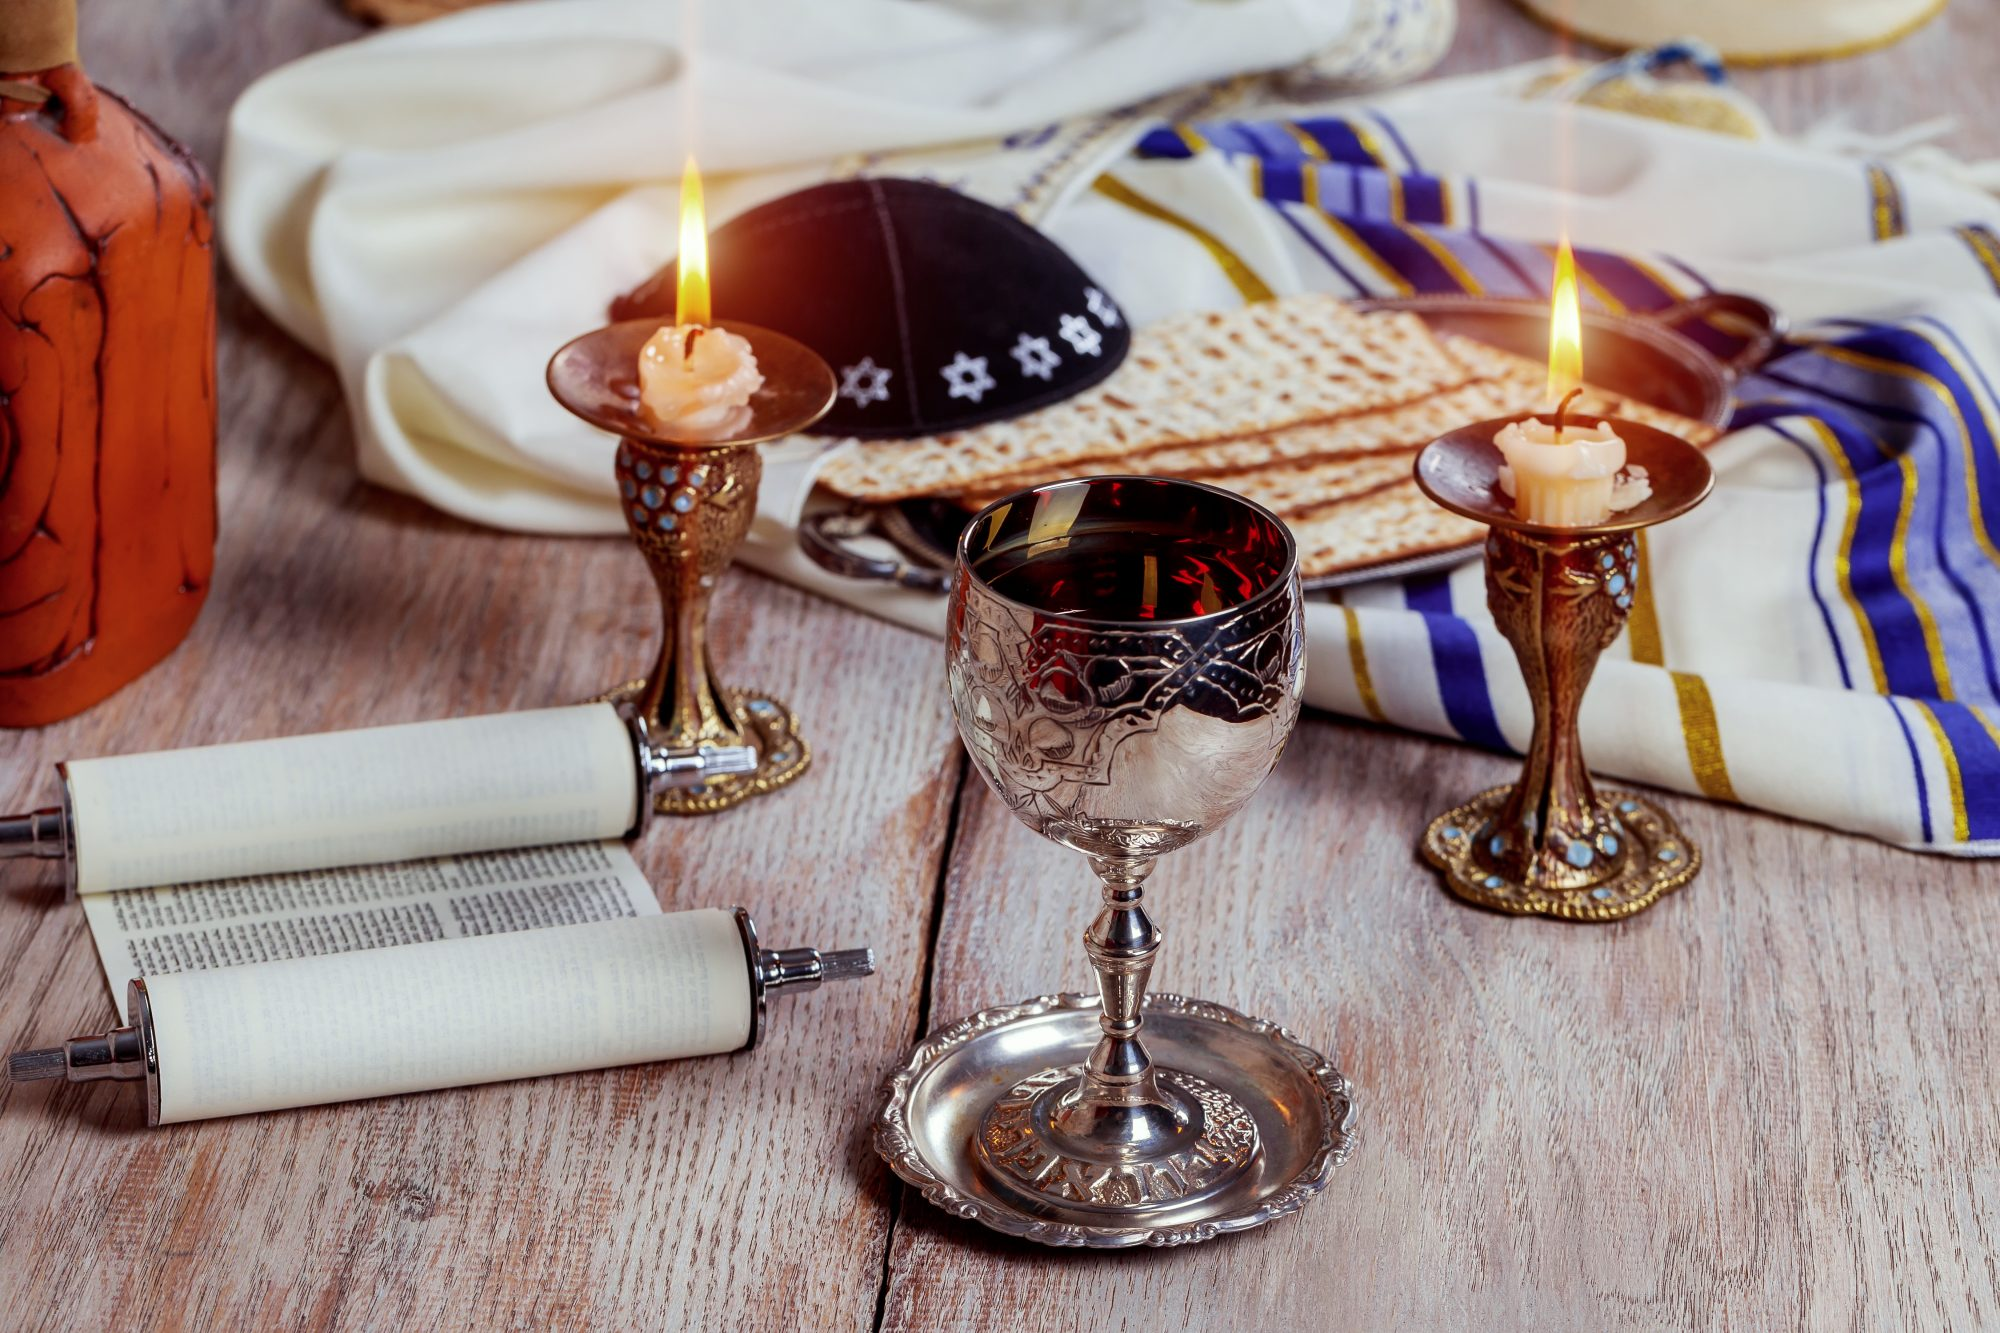 passover seder candles and wine